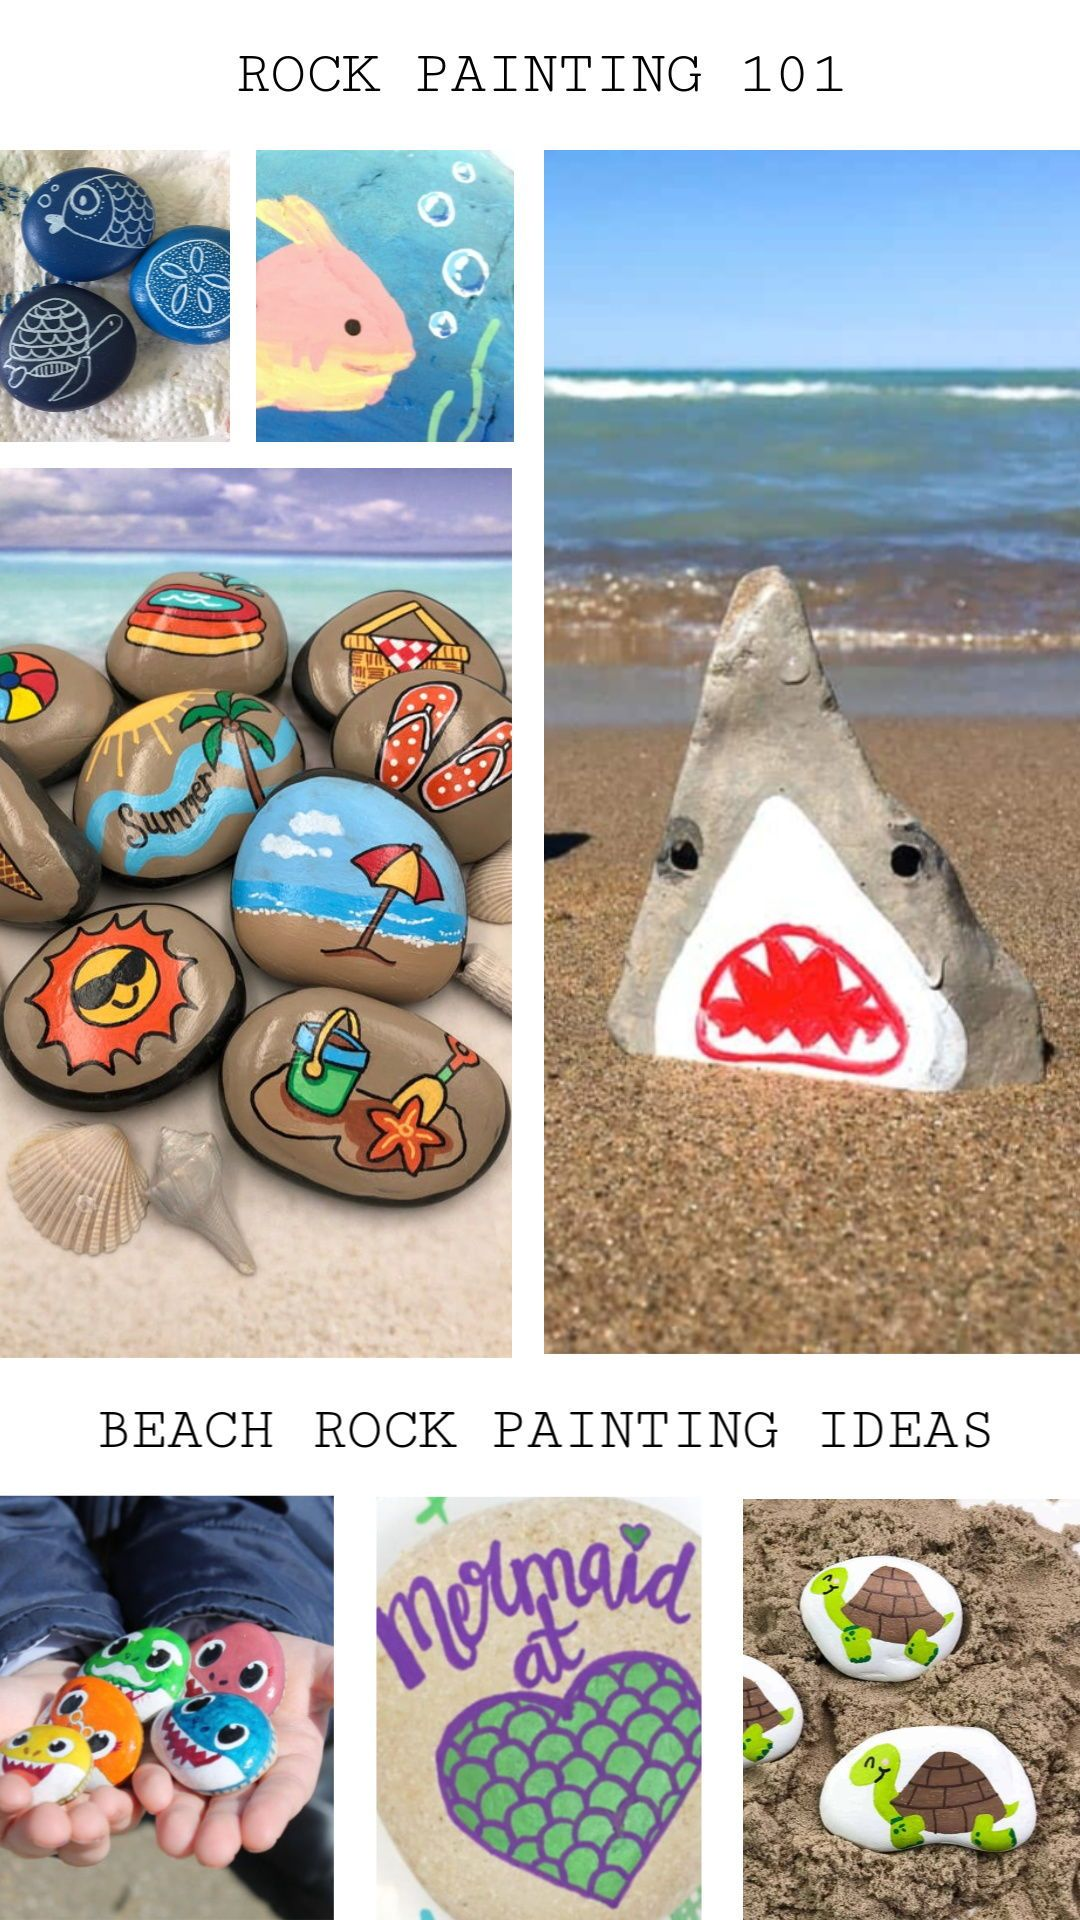 10 Easy Beach Rock Painting Ideas To Get Geared Up For Summer Rock Painting 101 In 2020 Painted Rocks Turtle Painted Rocks Painted Rocks Diy